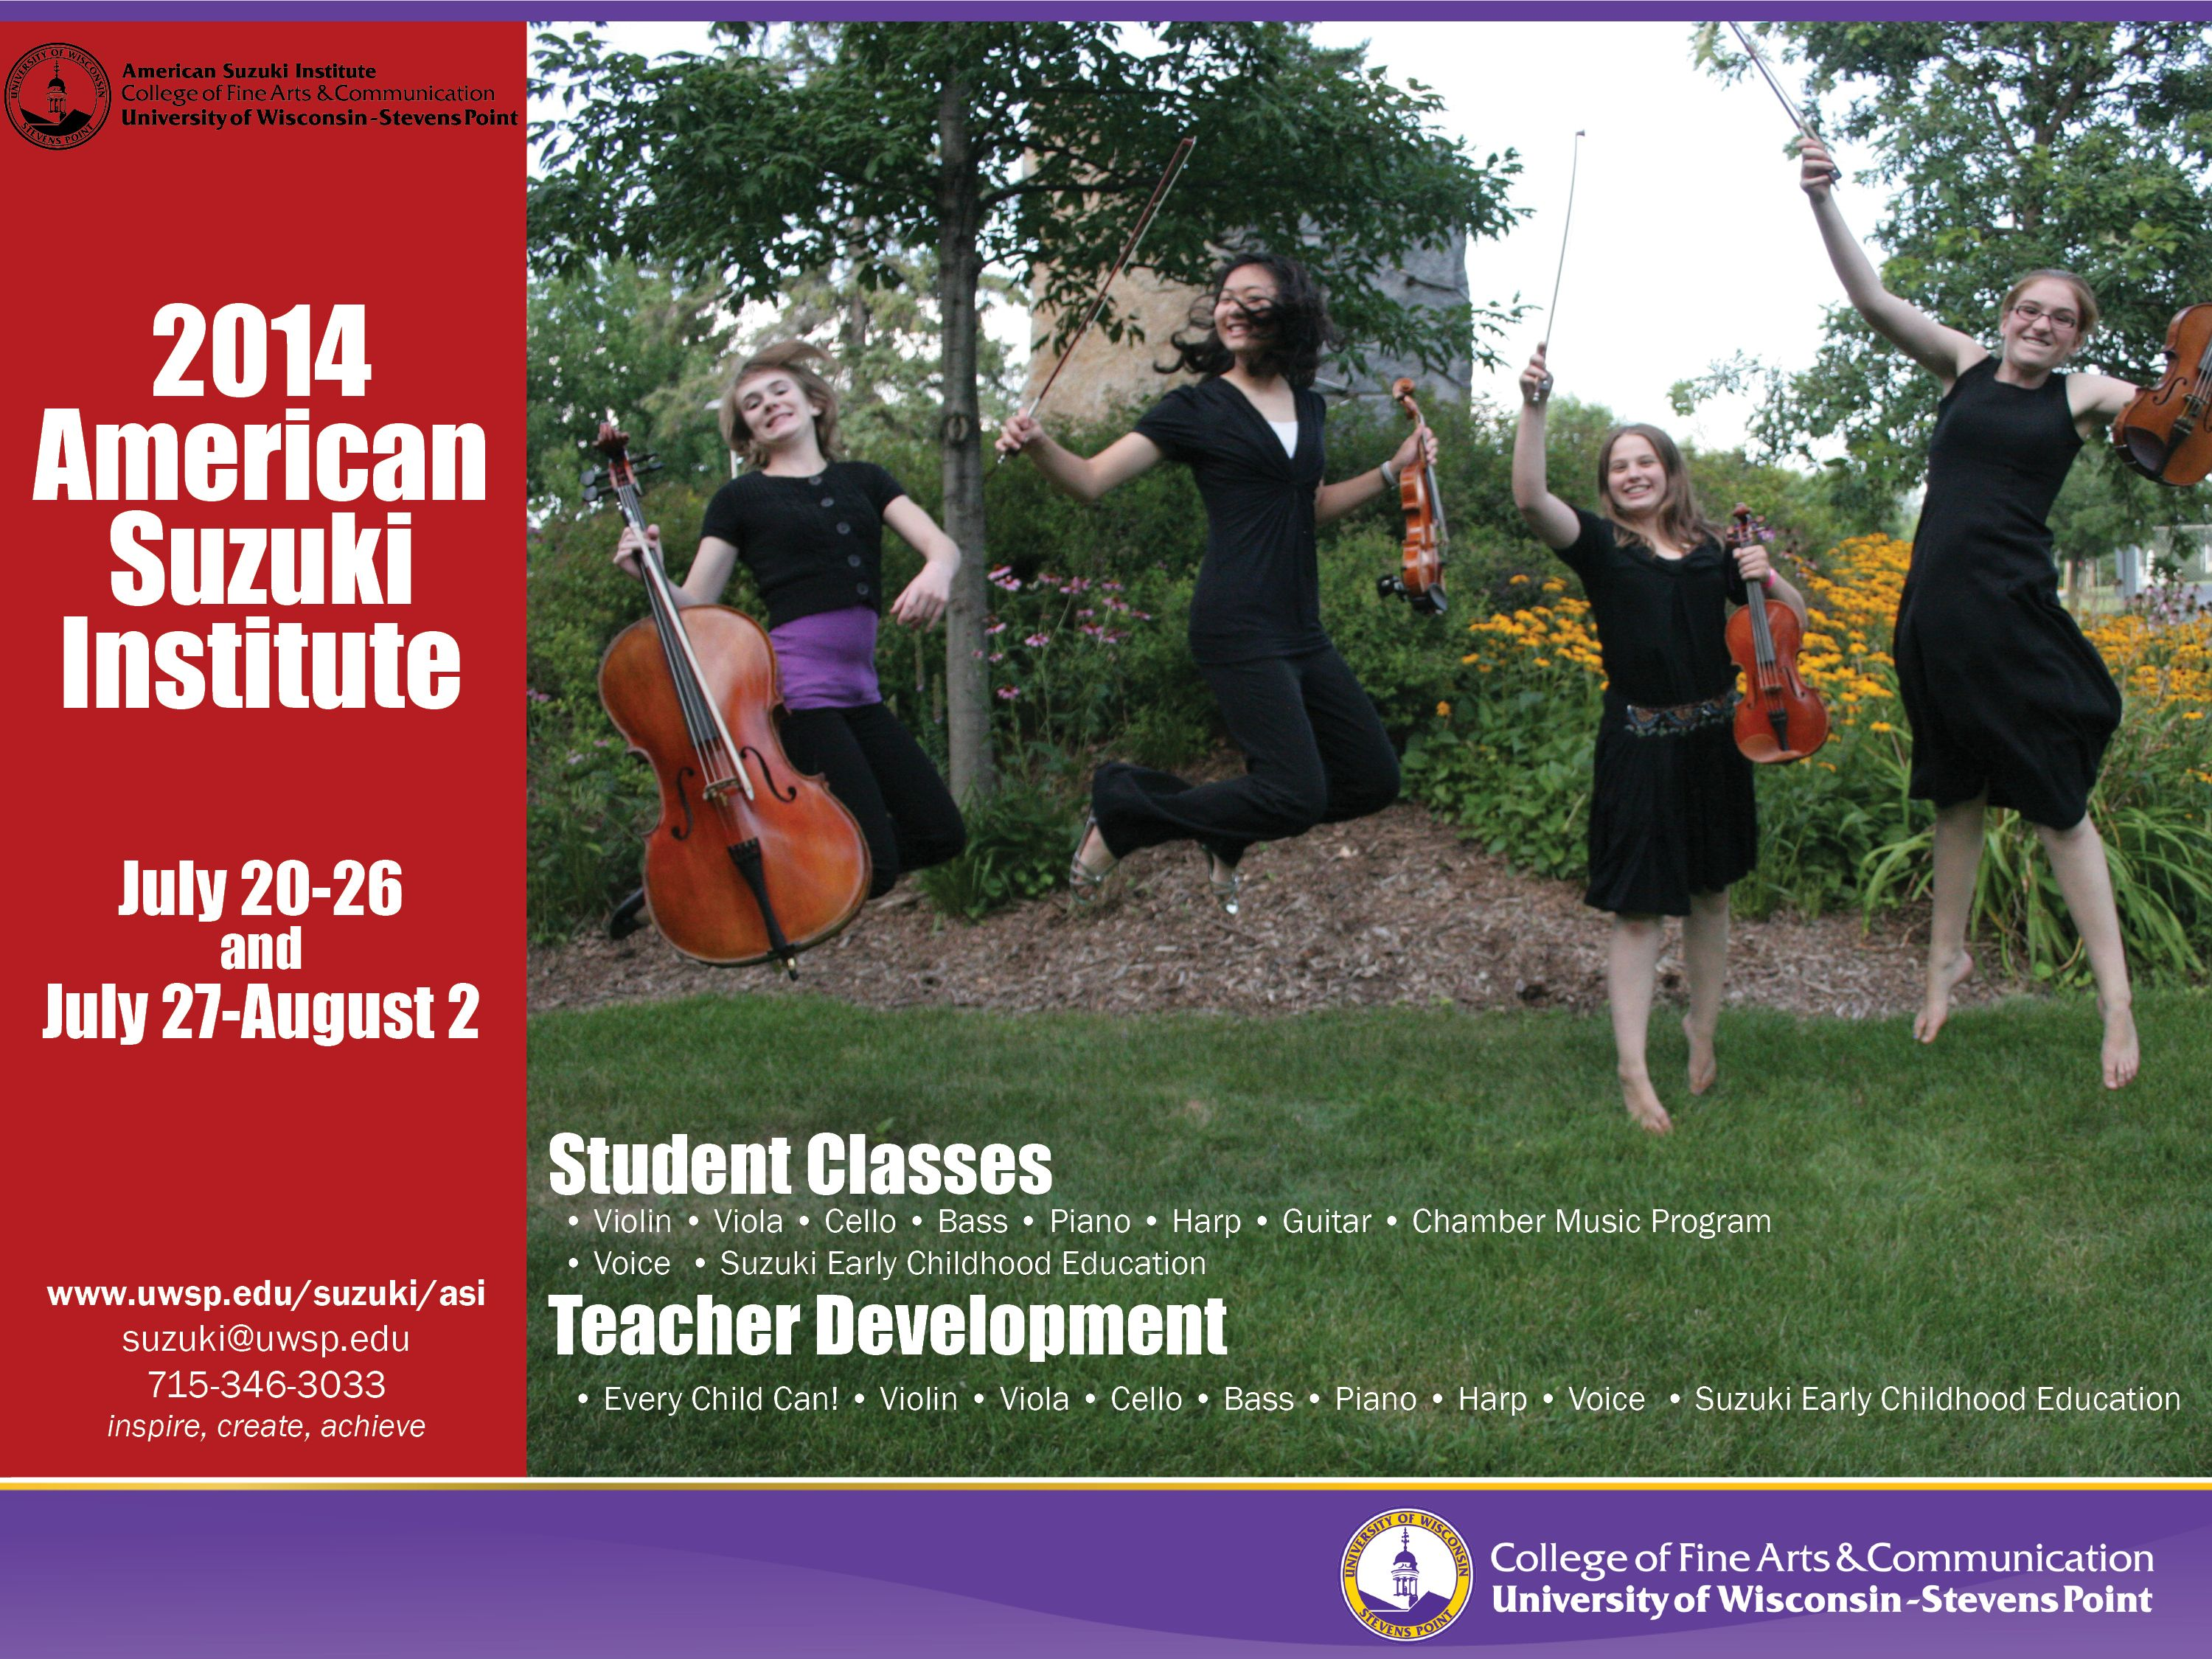 Register Now For The American Suzuki Institute July Is Coming Quickly Teacher Development Childhood Education Early Childhood Education